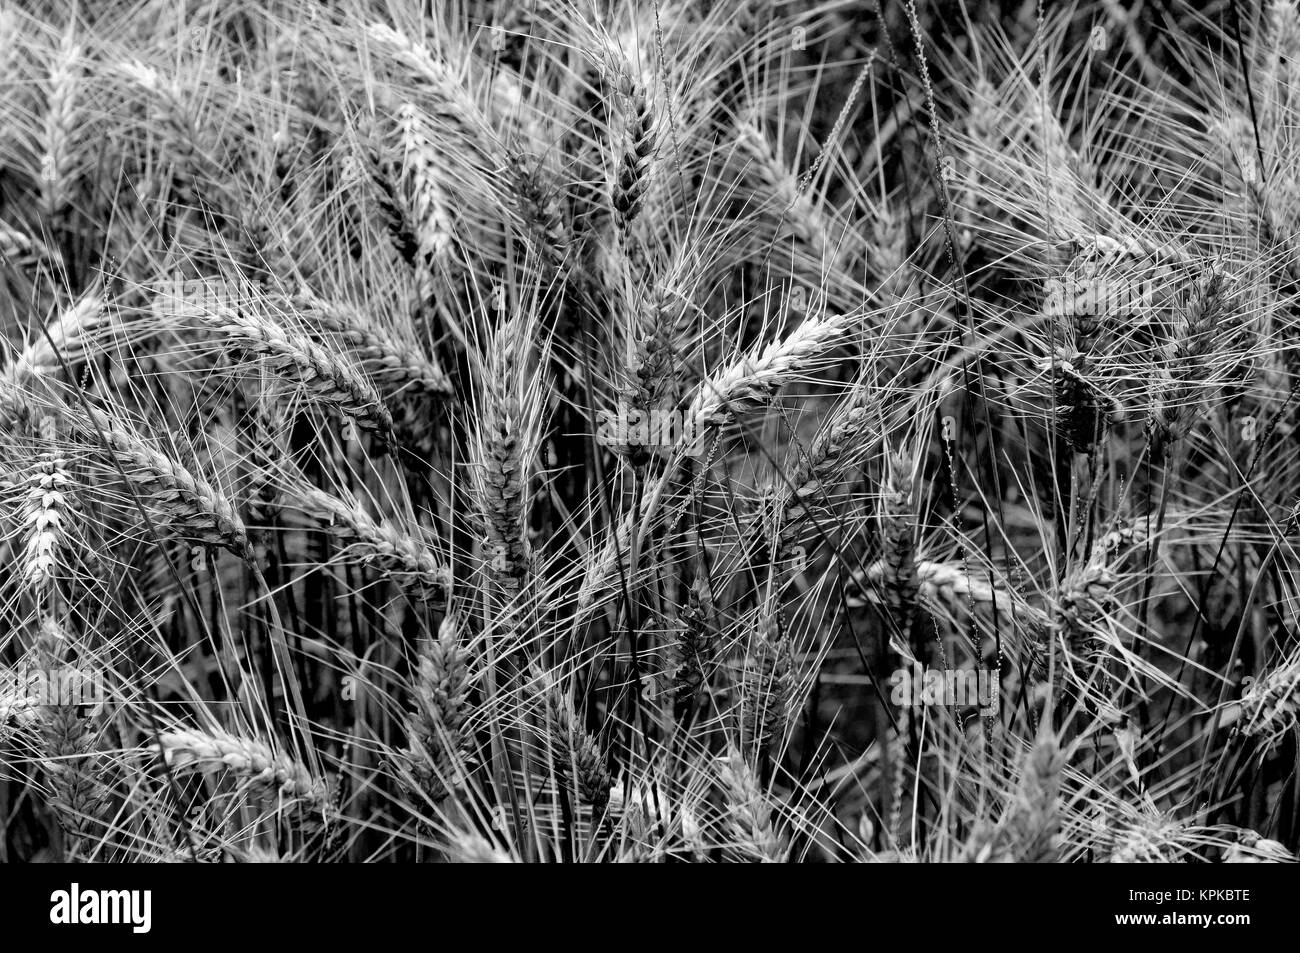 Wheat field, black and white, in rural landscape in France - Stock Image